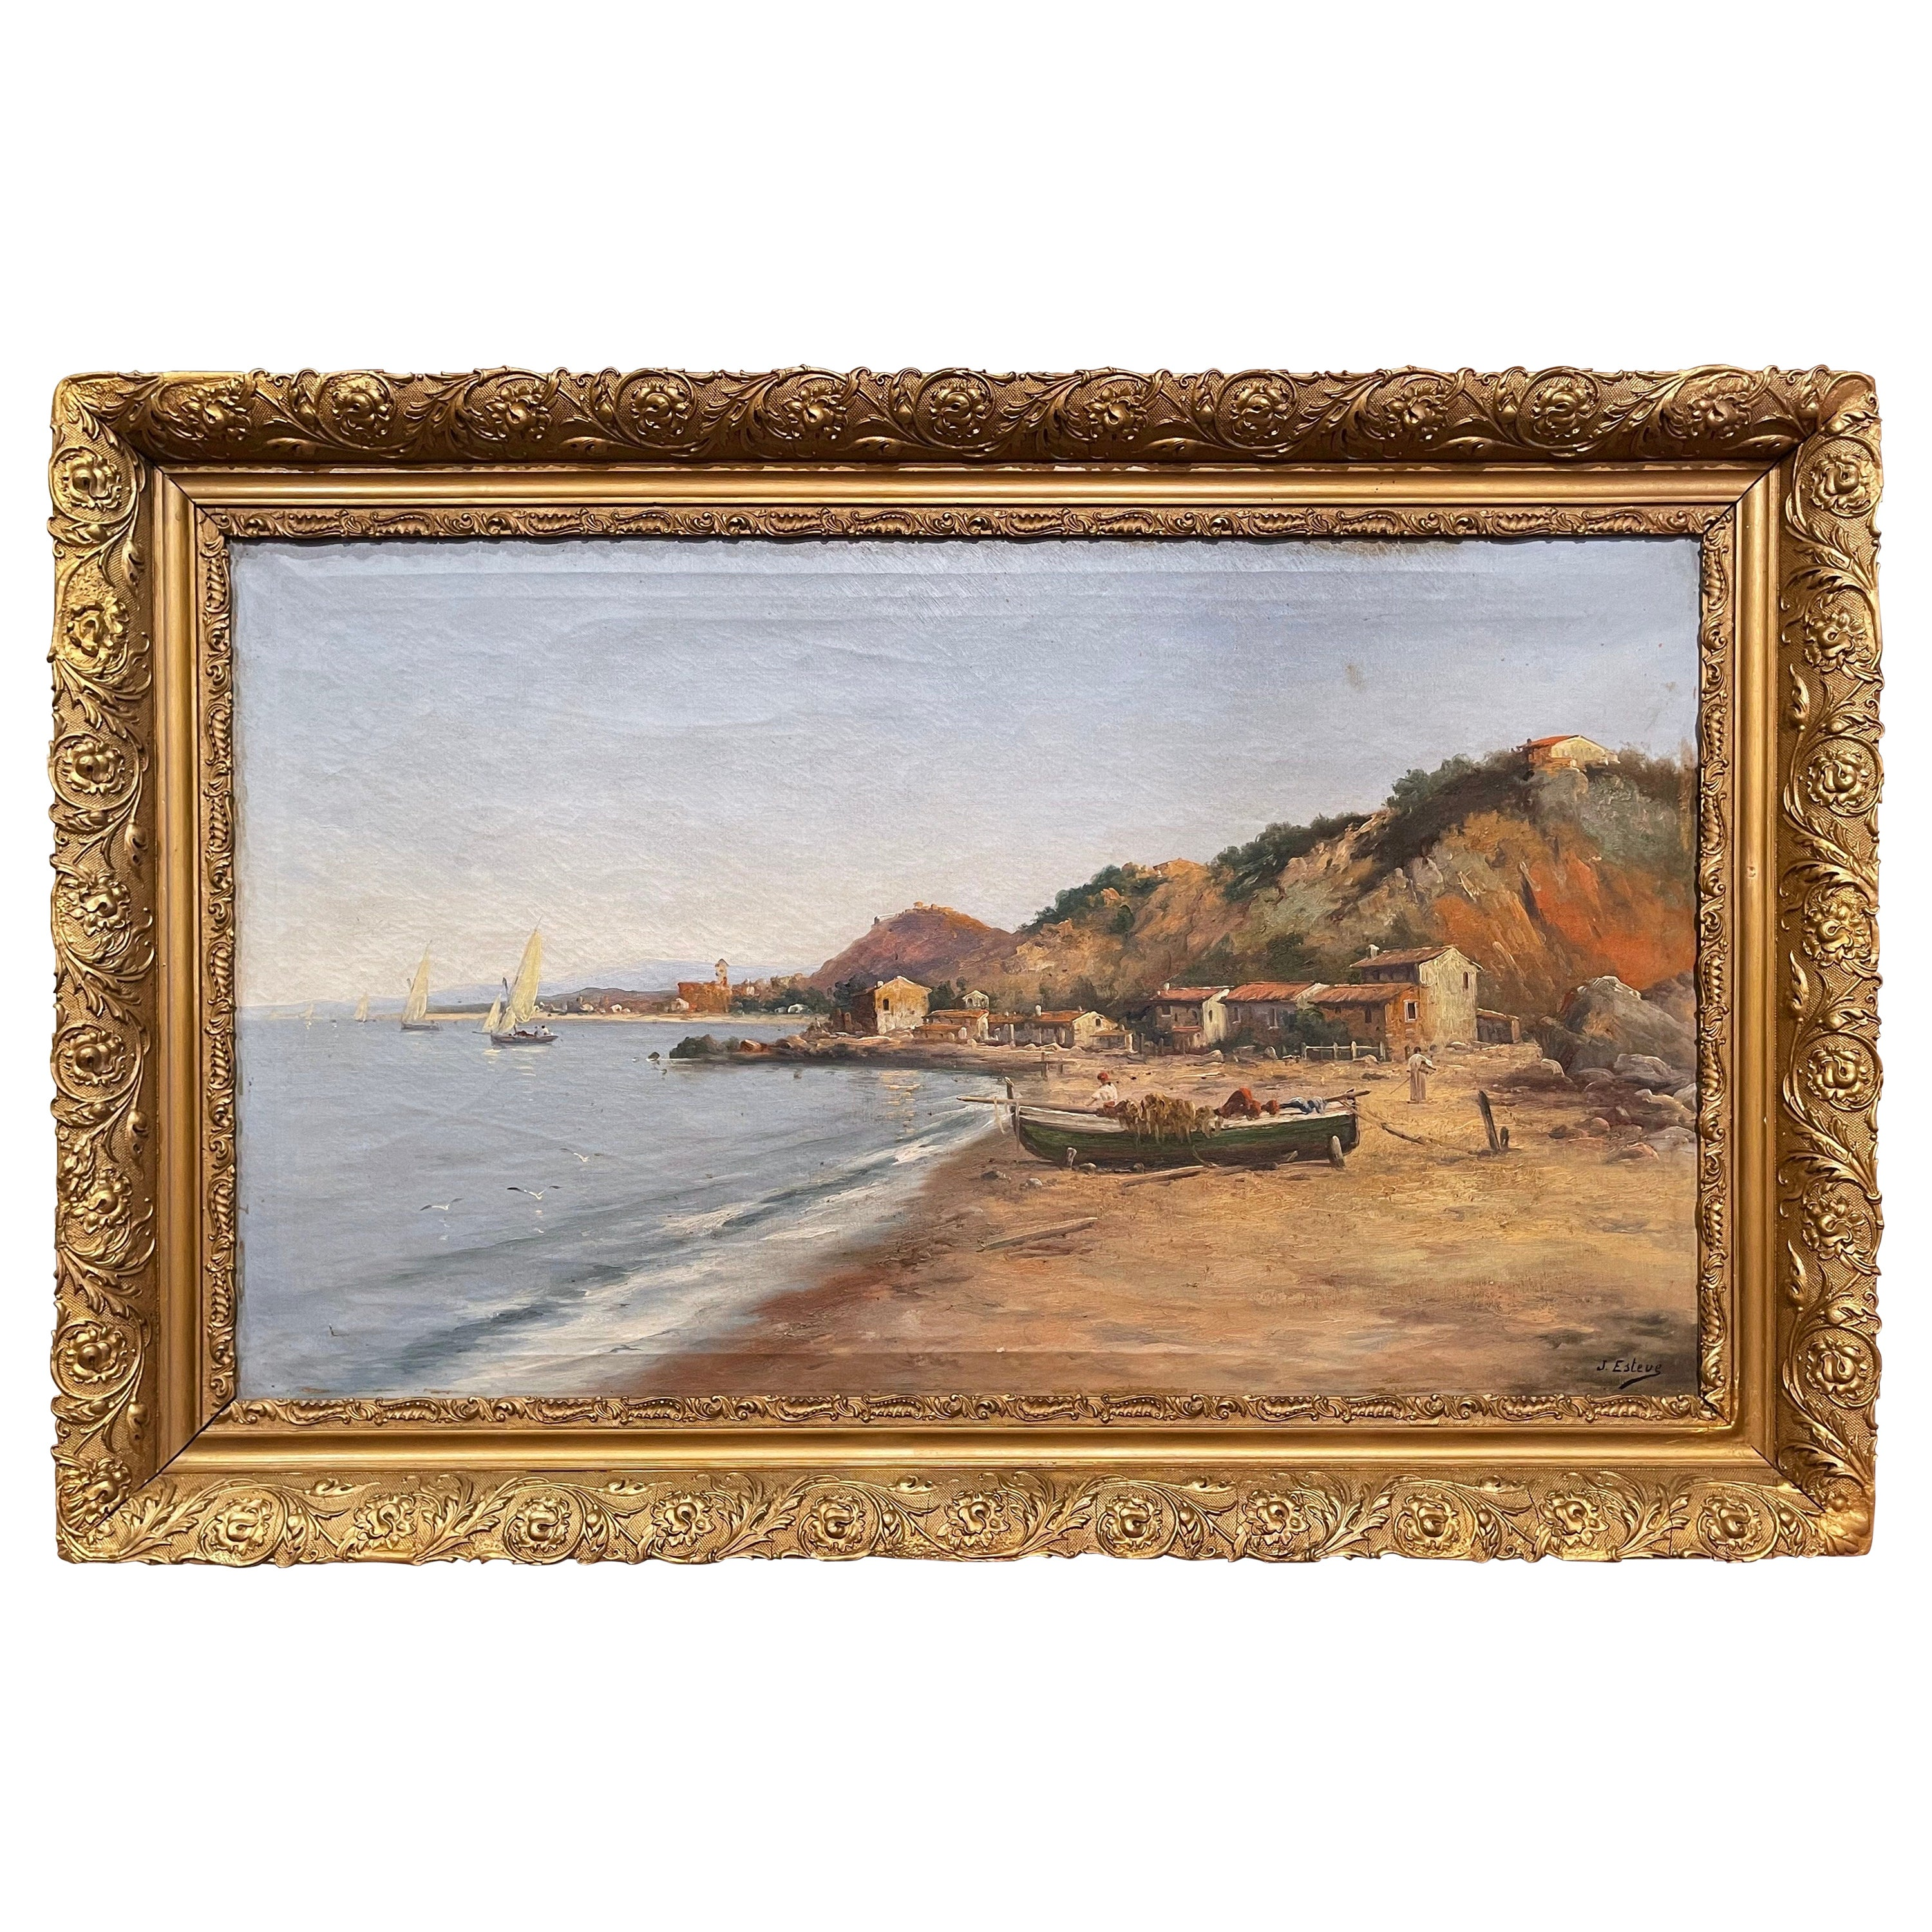 19th Century French Oil on Canvas Sea-Coat Painting in Gilt Frame Signed Esteve